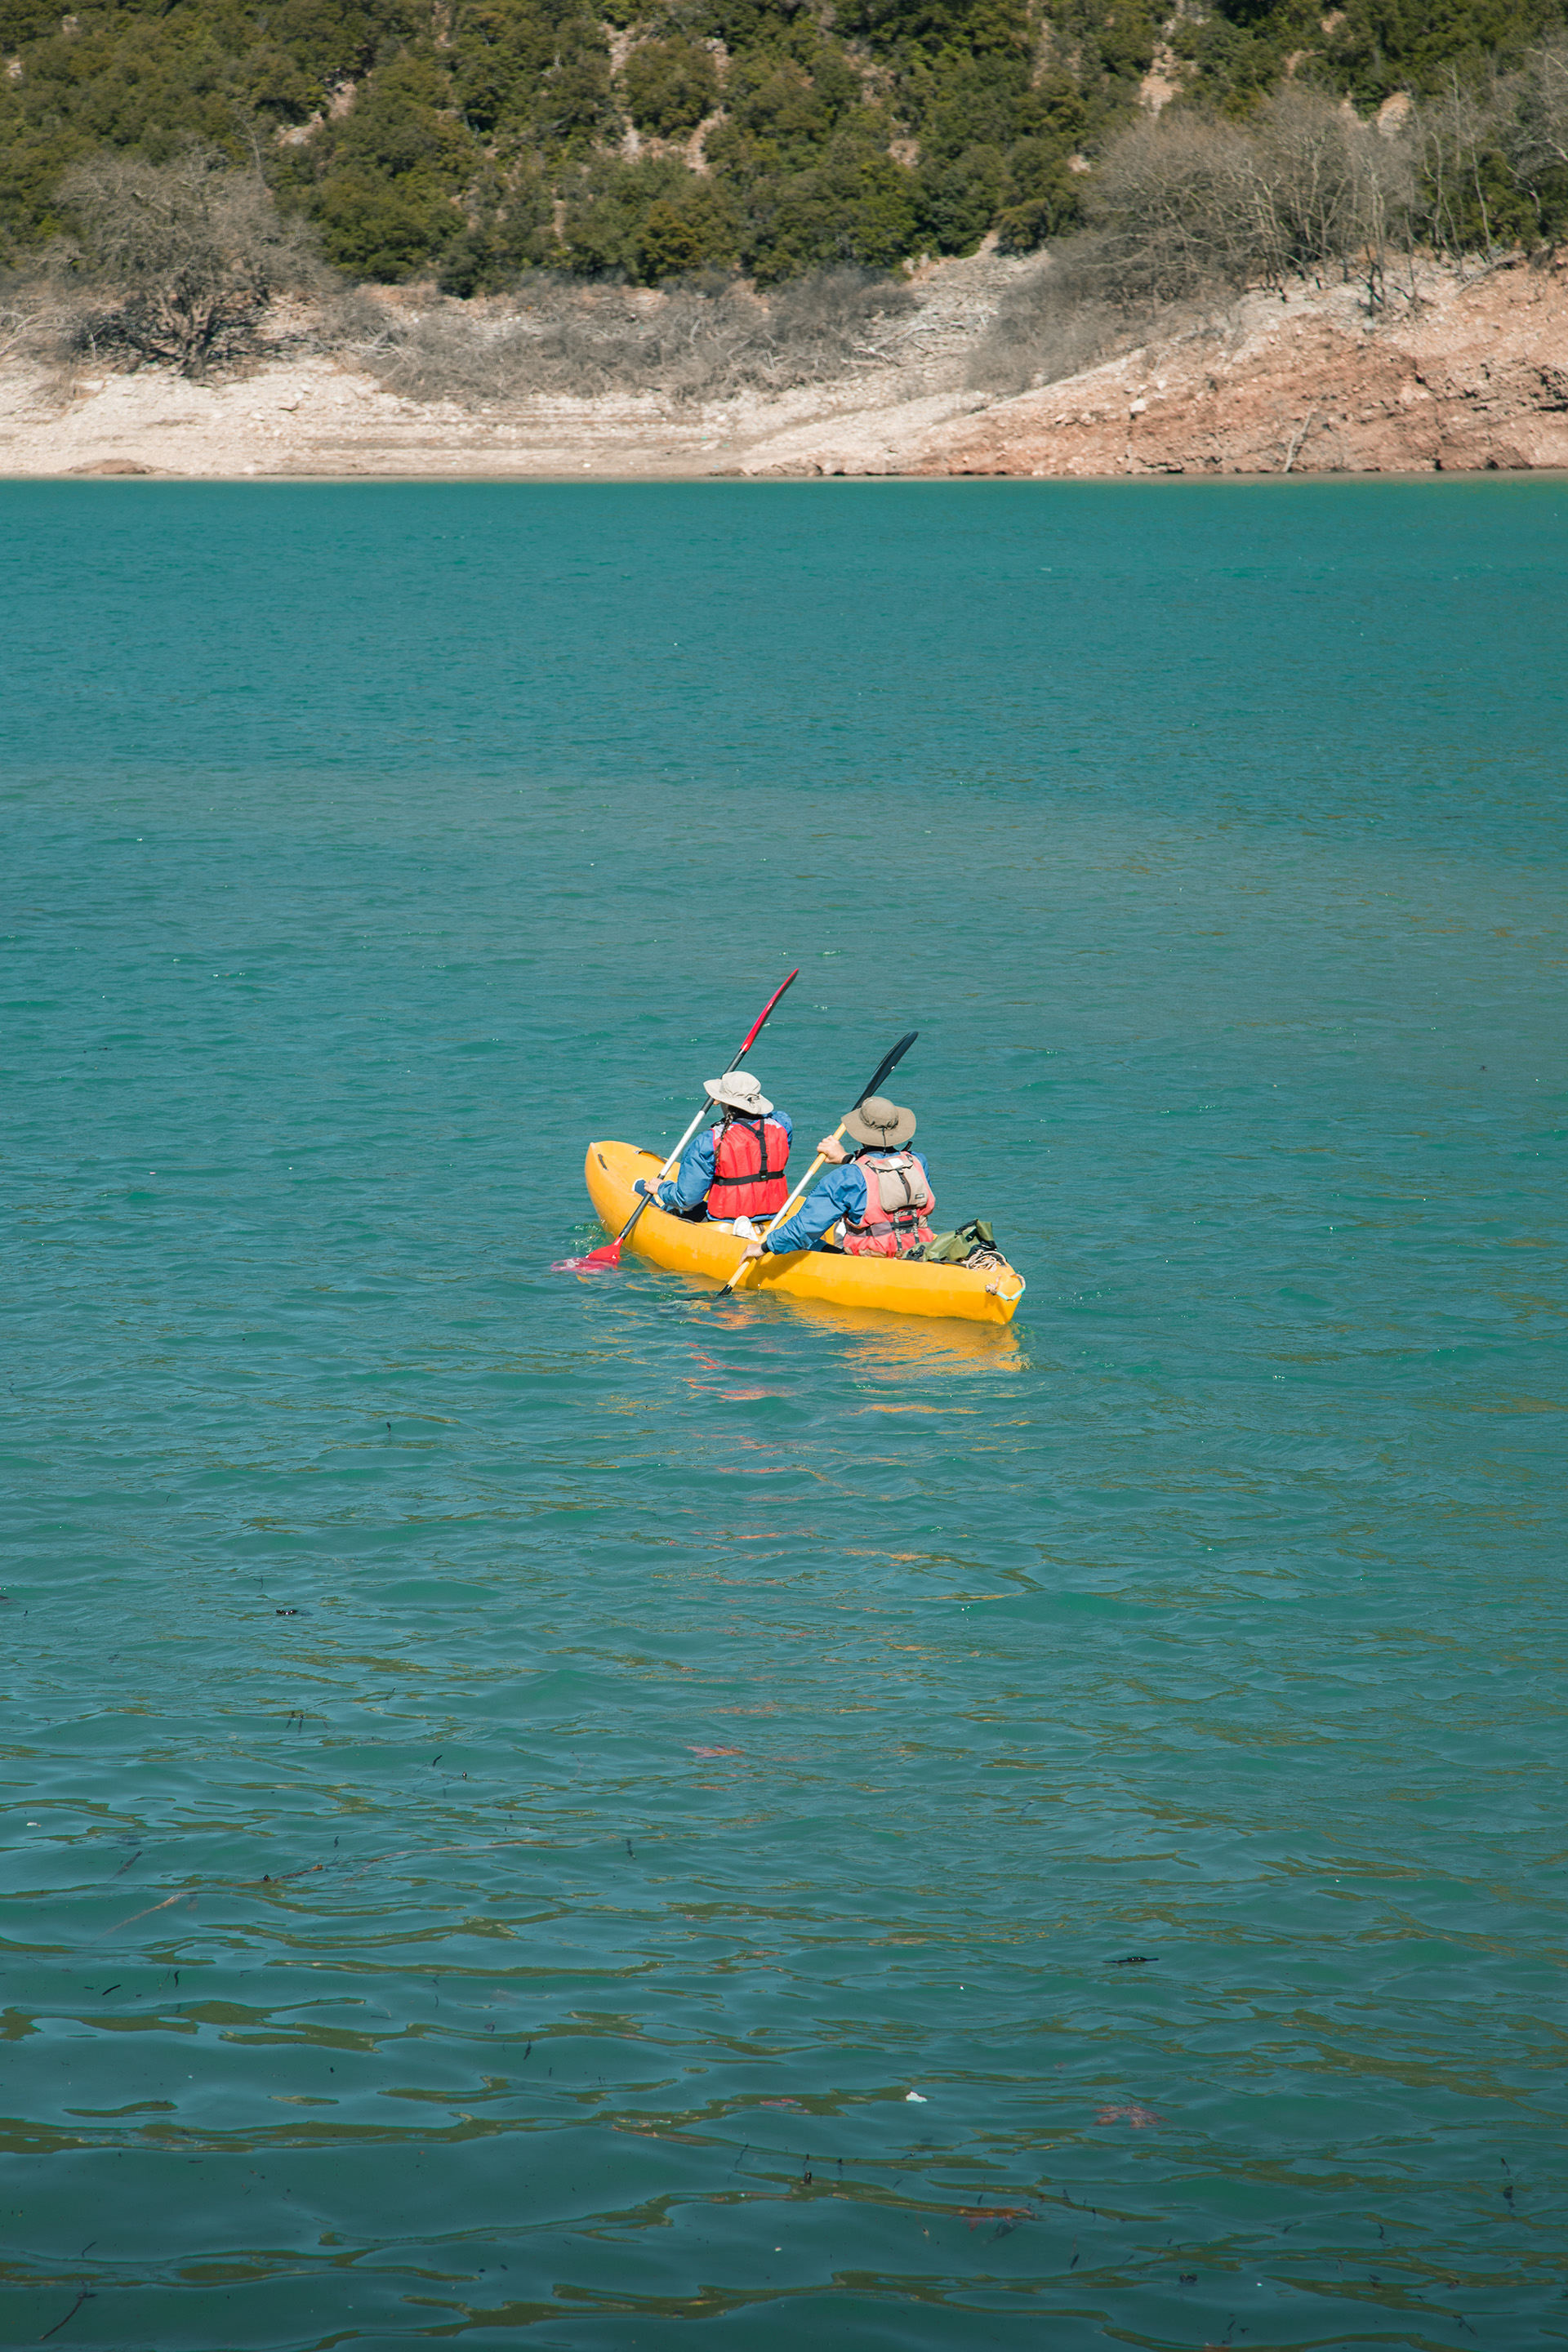 Kayaking at Lake Kremaston, Evrytania